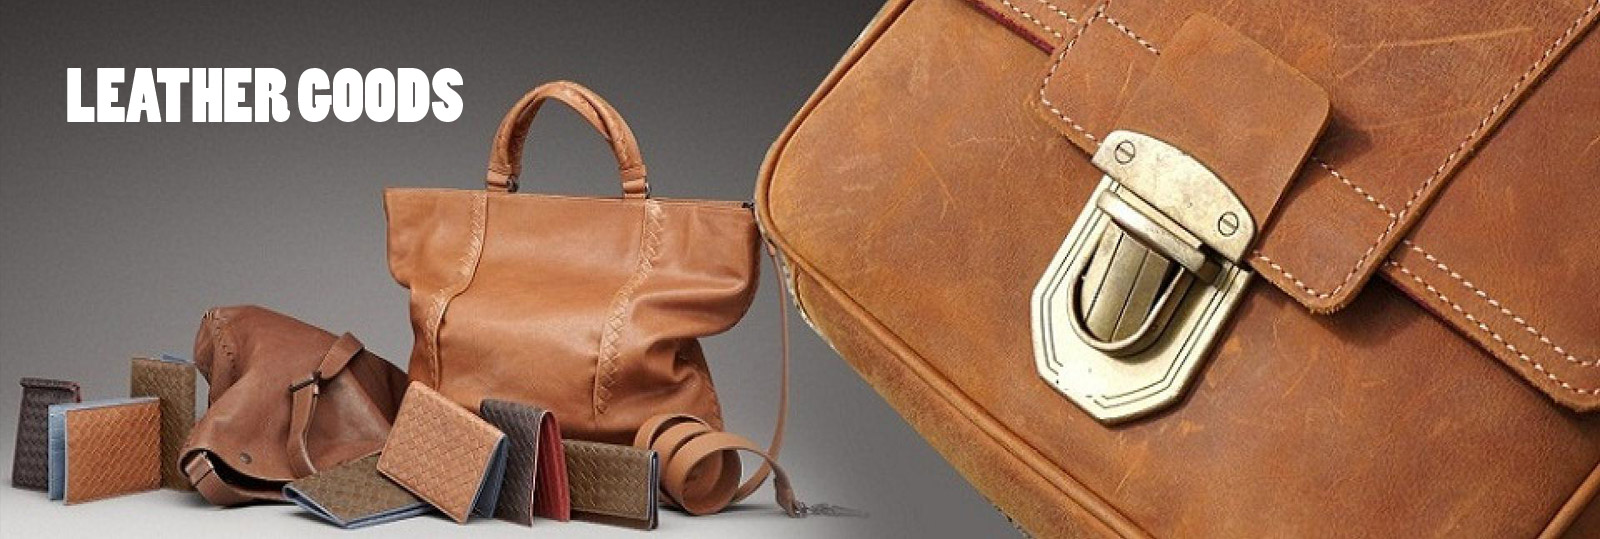 Leather Goods - Dynamic Solutions - Manufacturer & Exporter of Premium  Quality Leather Garments & Leather Goods